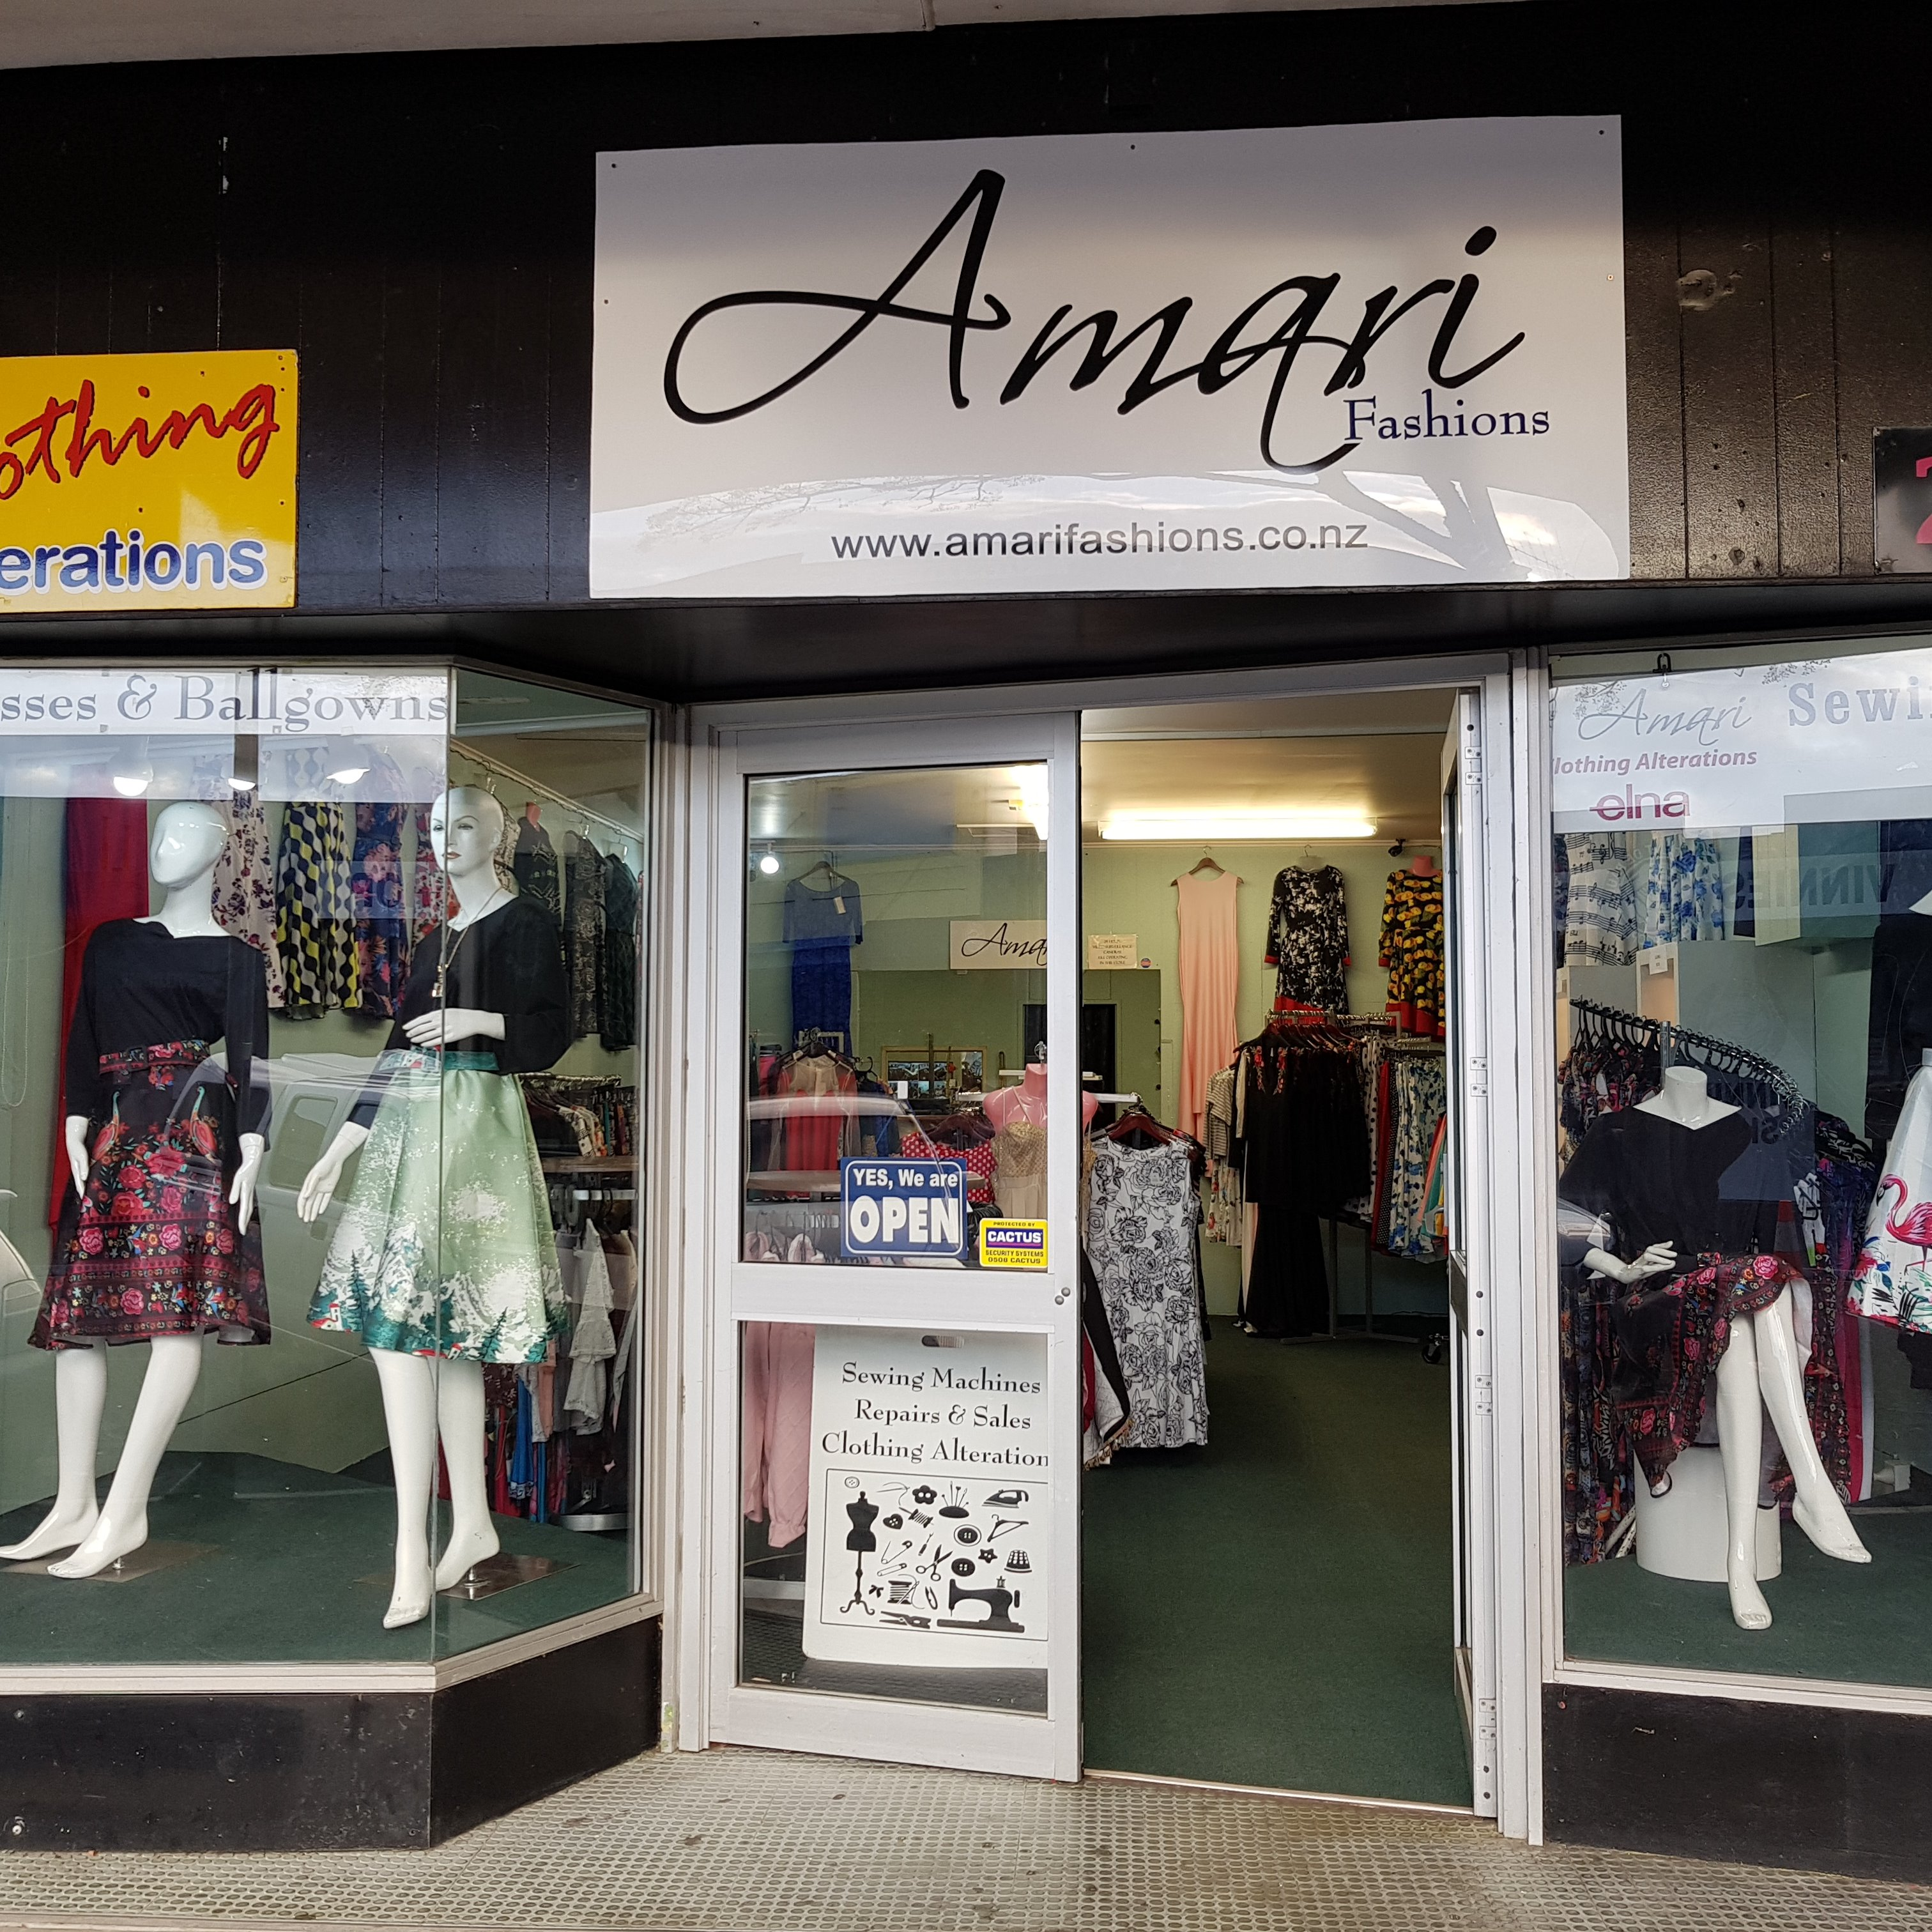 Jay Sewing Service/Amari fashions